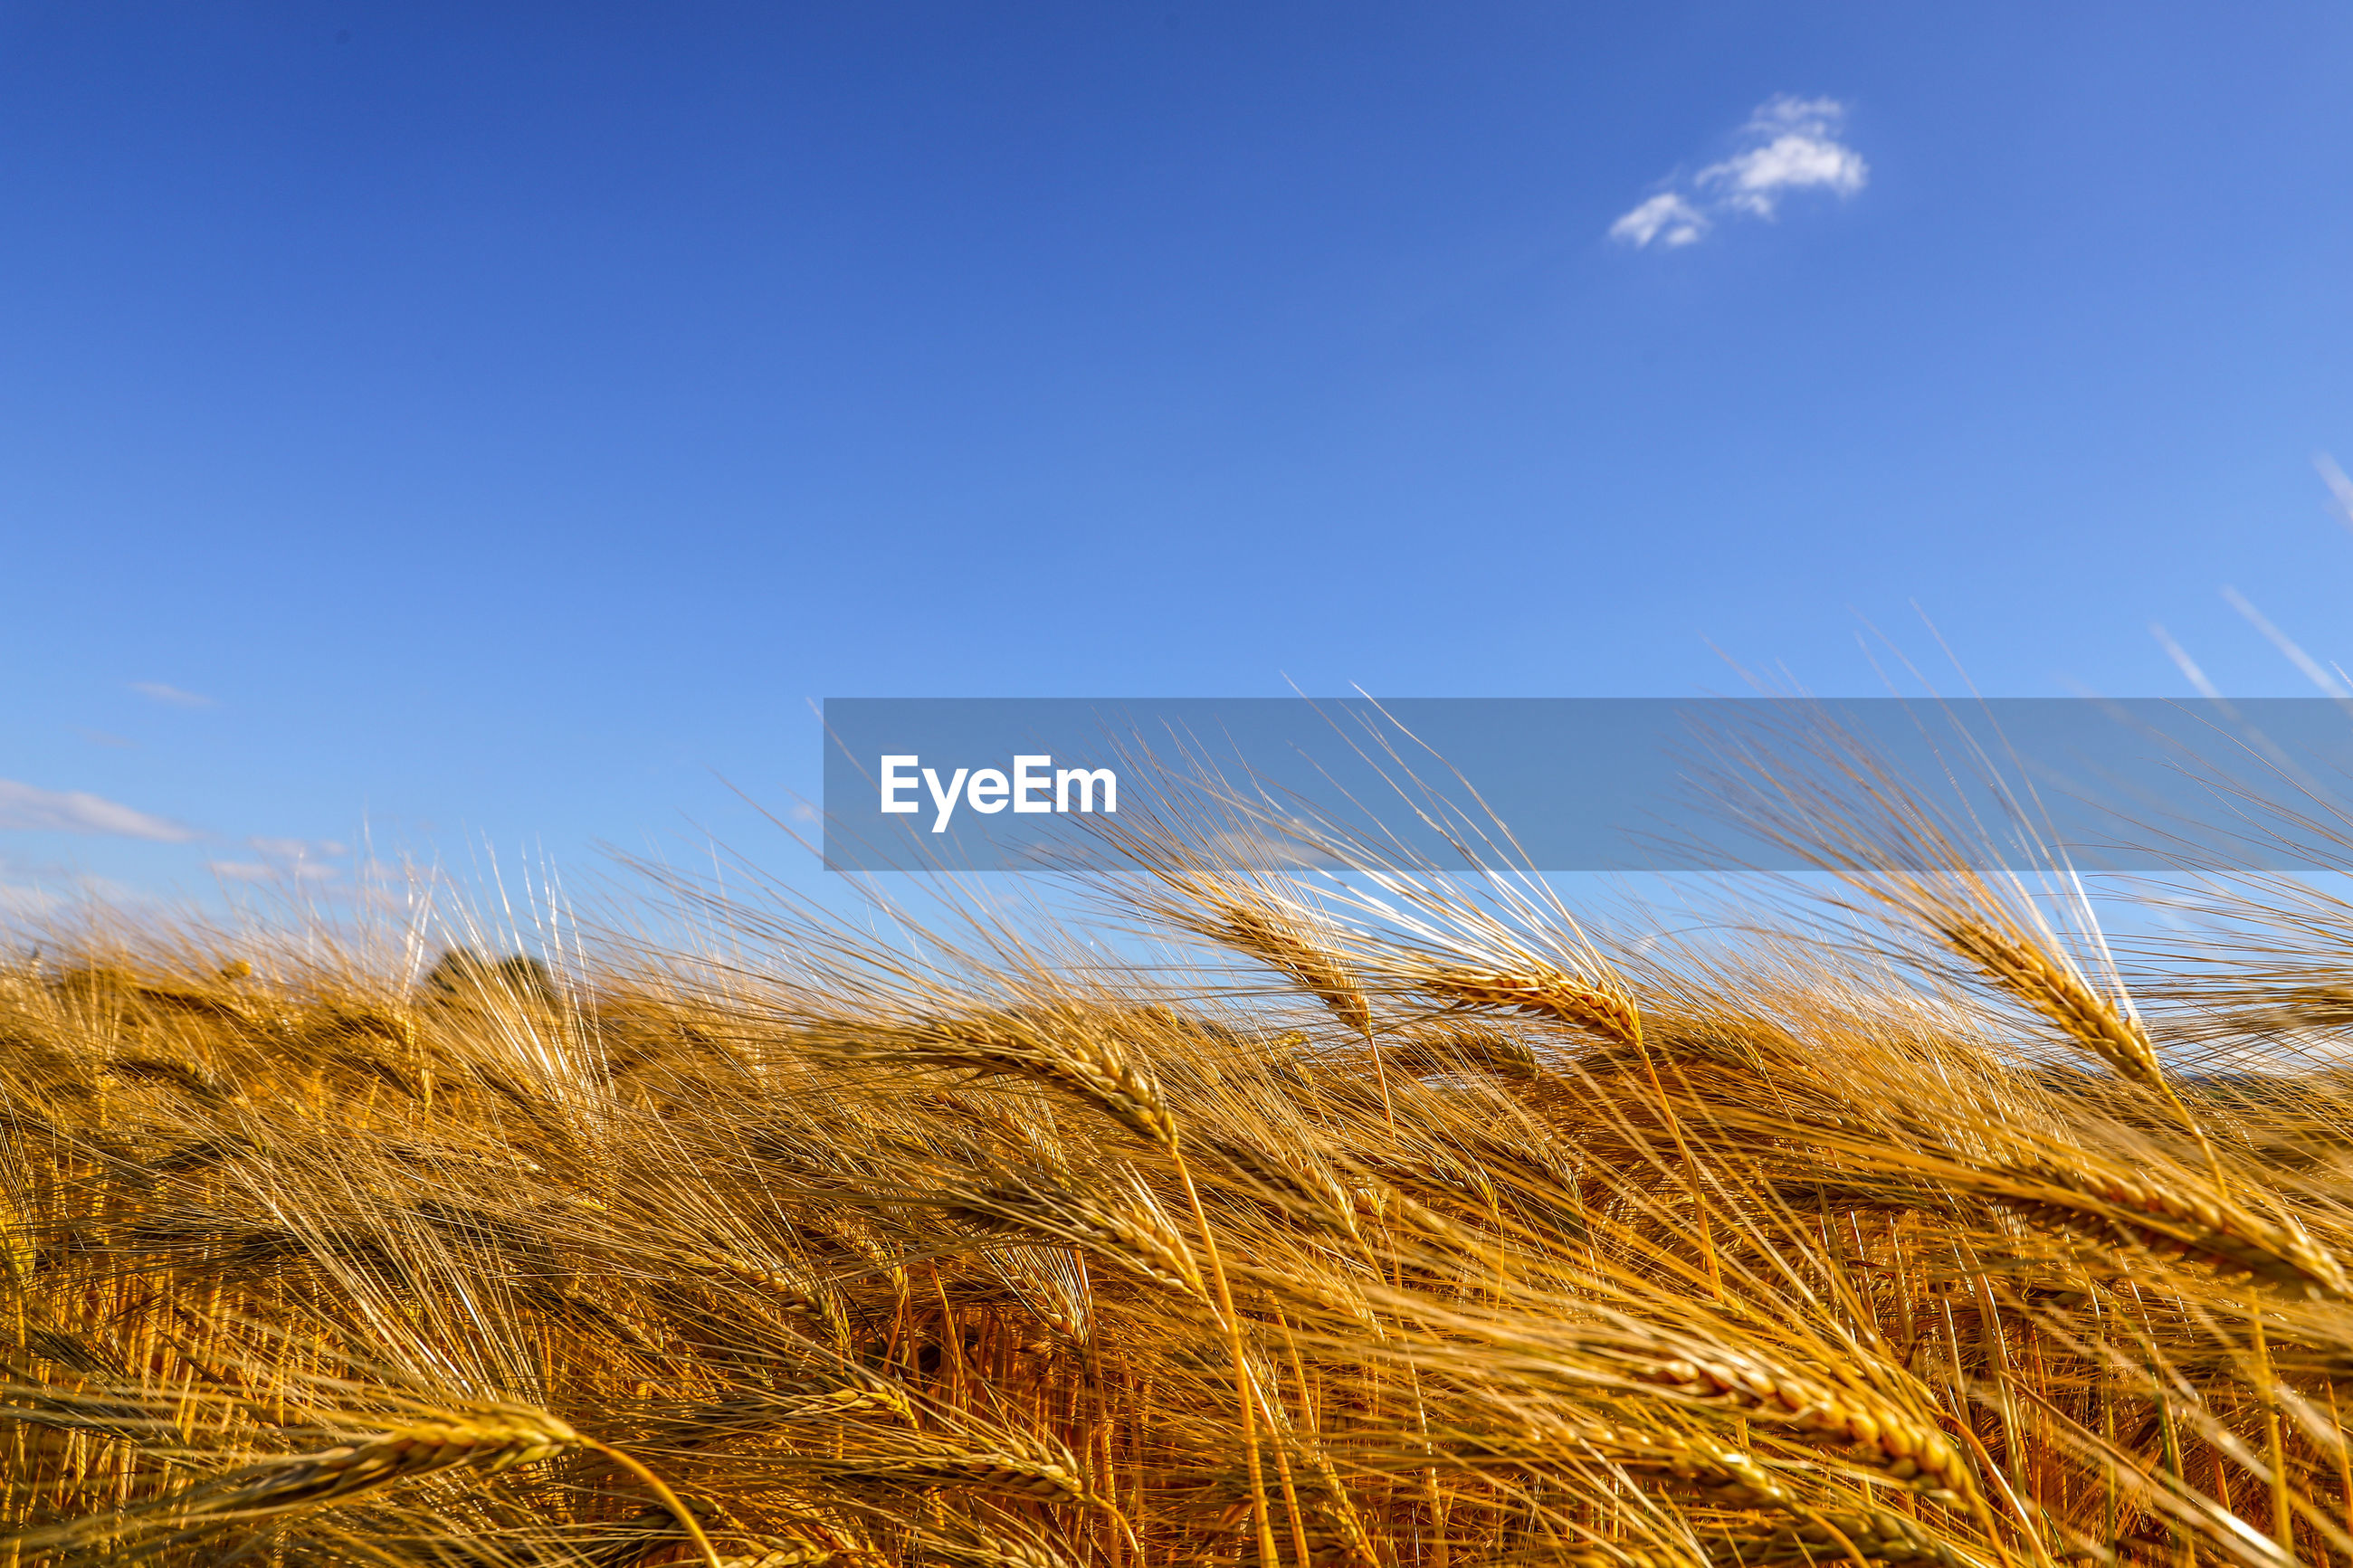 CLOSE-UP OF STALKS IN WHEAT FIELD AGAINST BLUE SKY